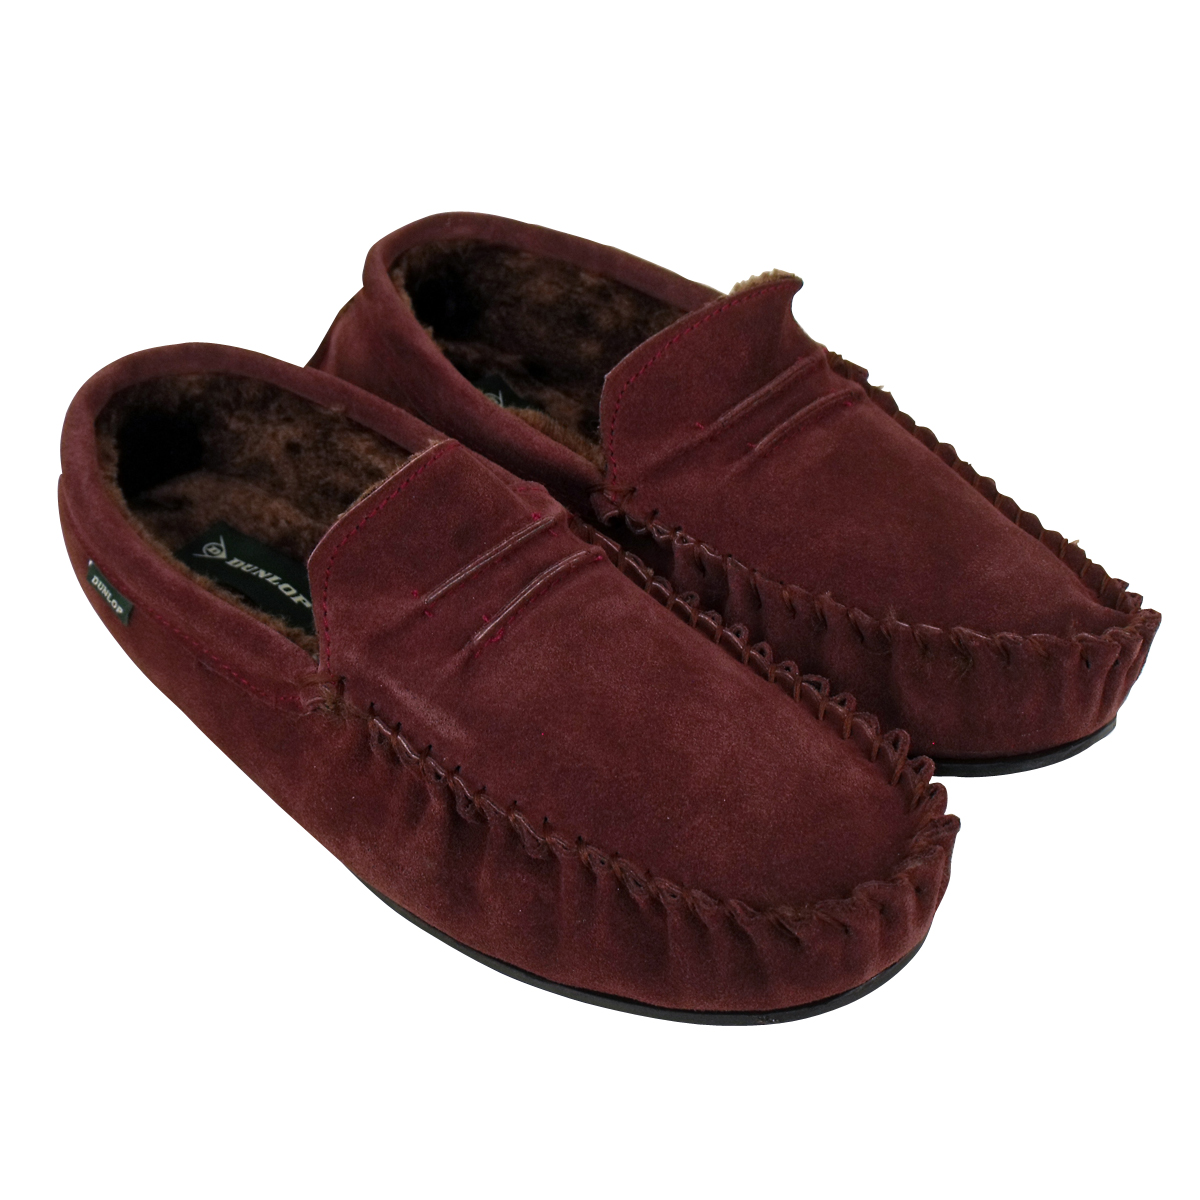 Mens Bedroom Slippers Leather Mens Dunlop Moccasin Suede Leather Slippers Gents Moccasins